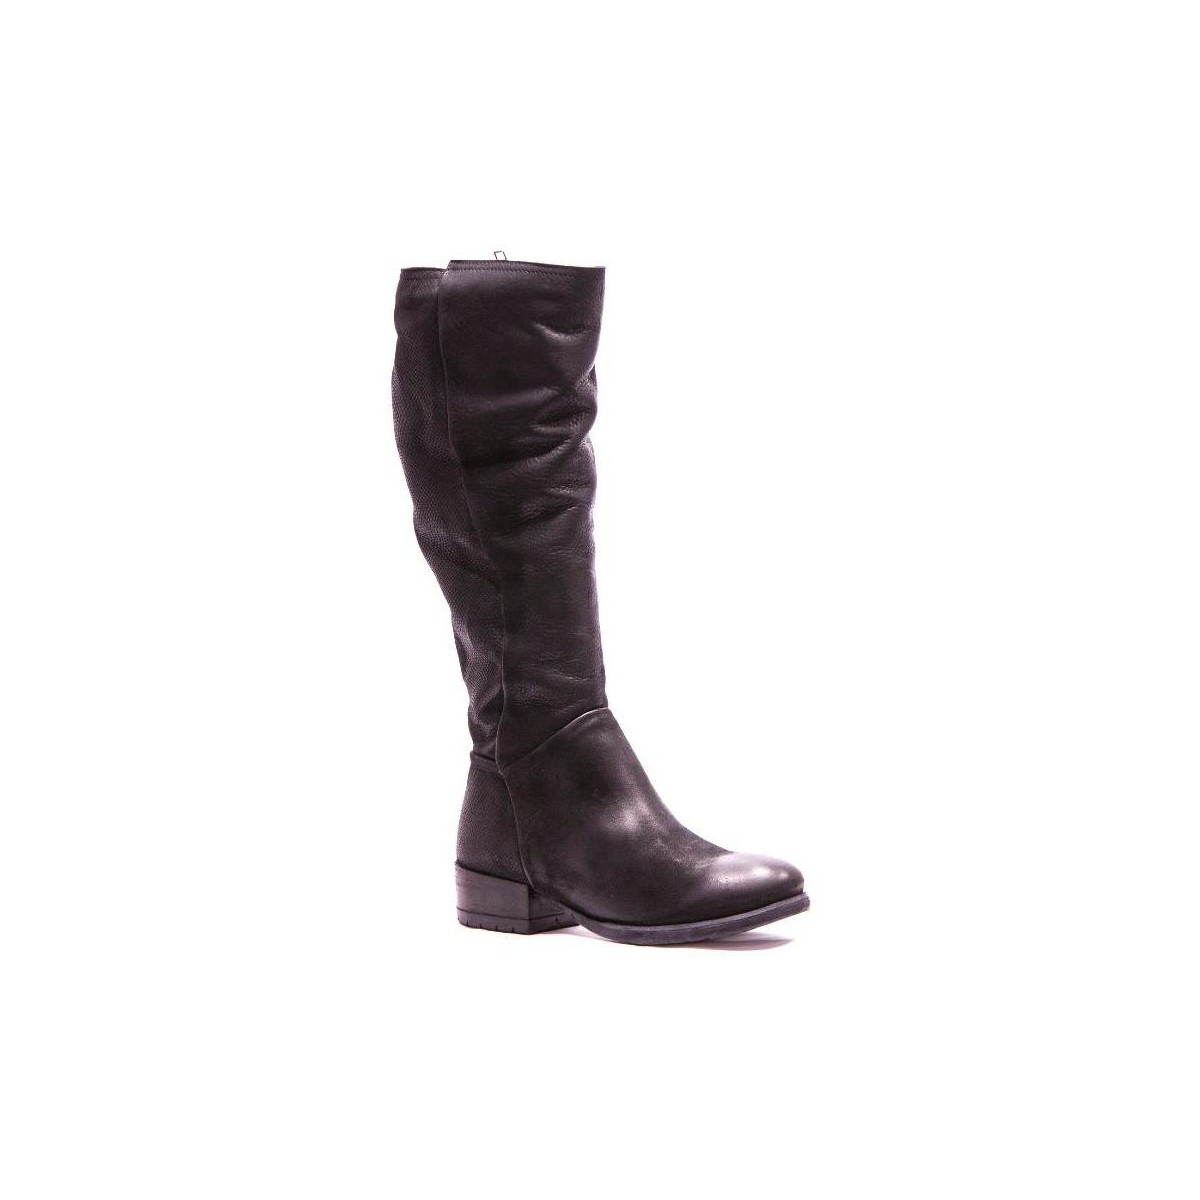 Botte ville Felmini Botte 9099 Noir noir